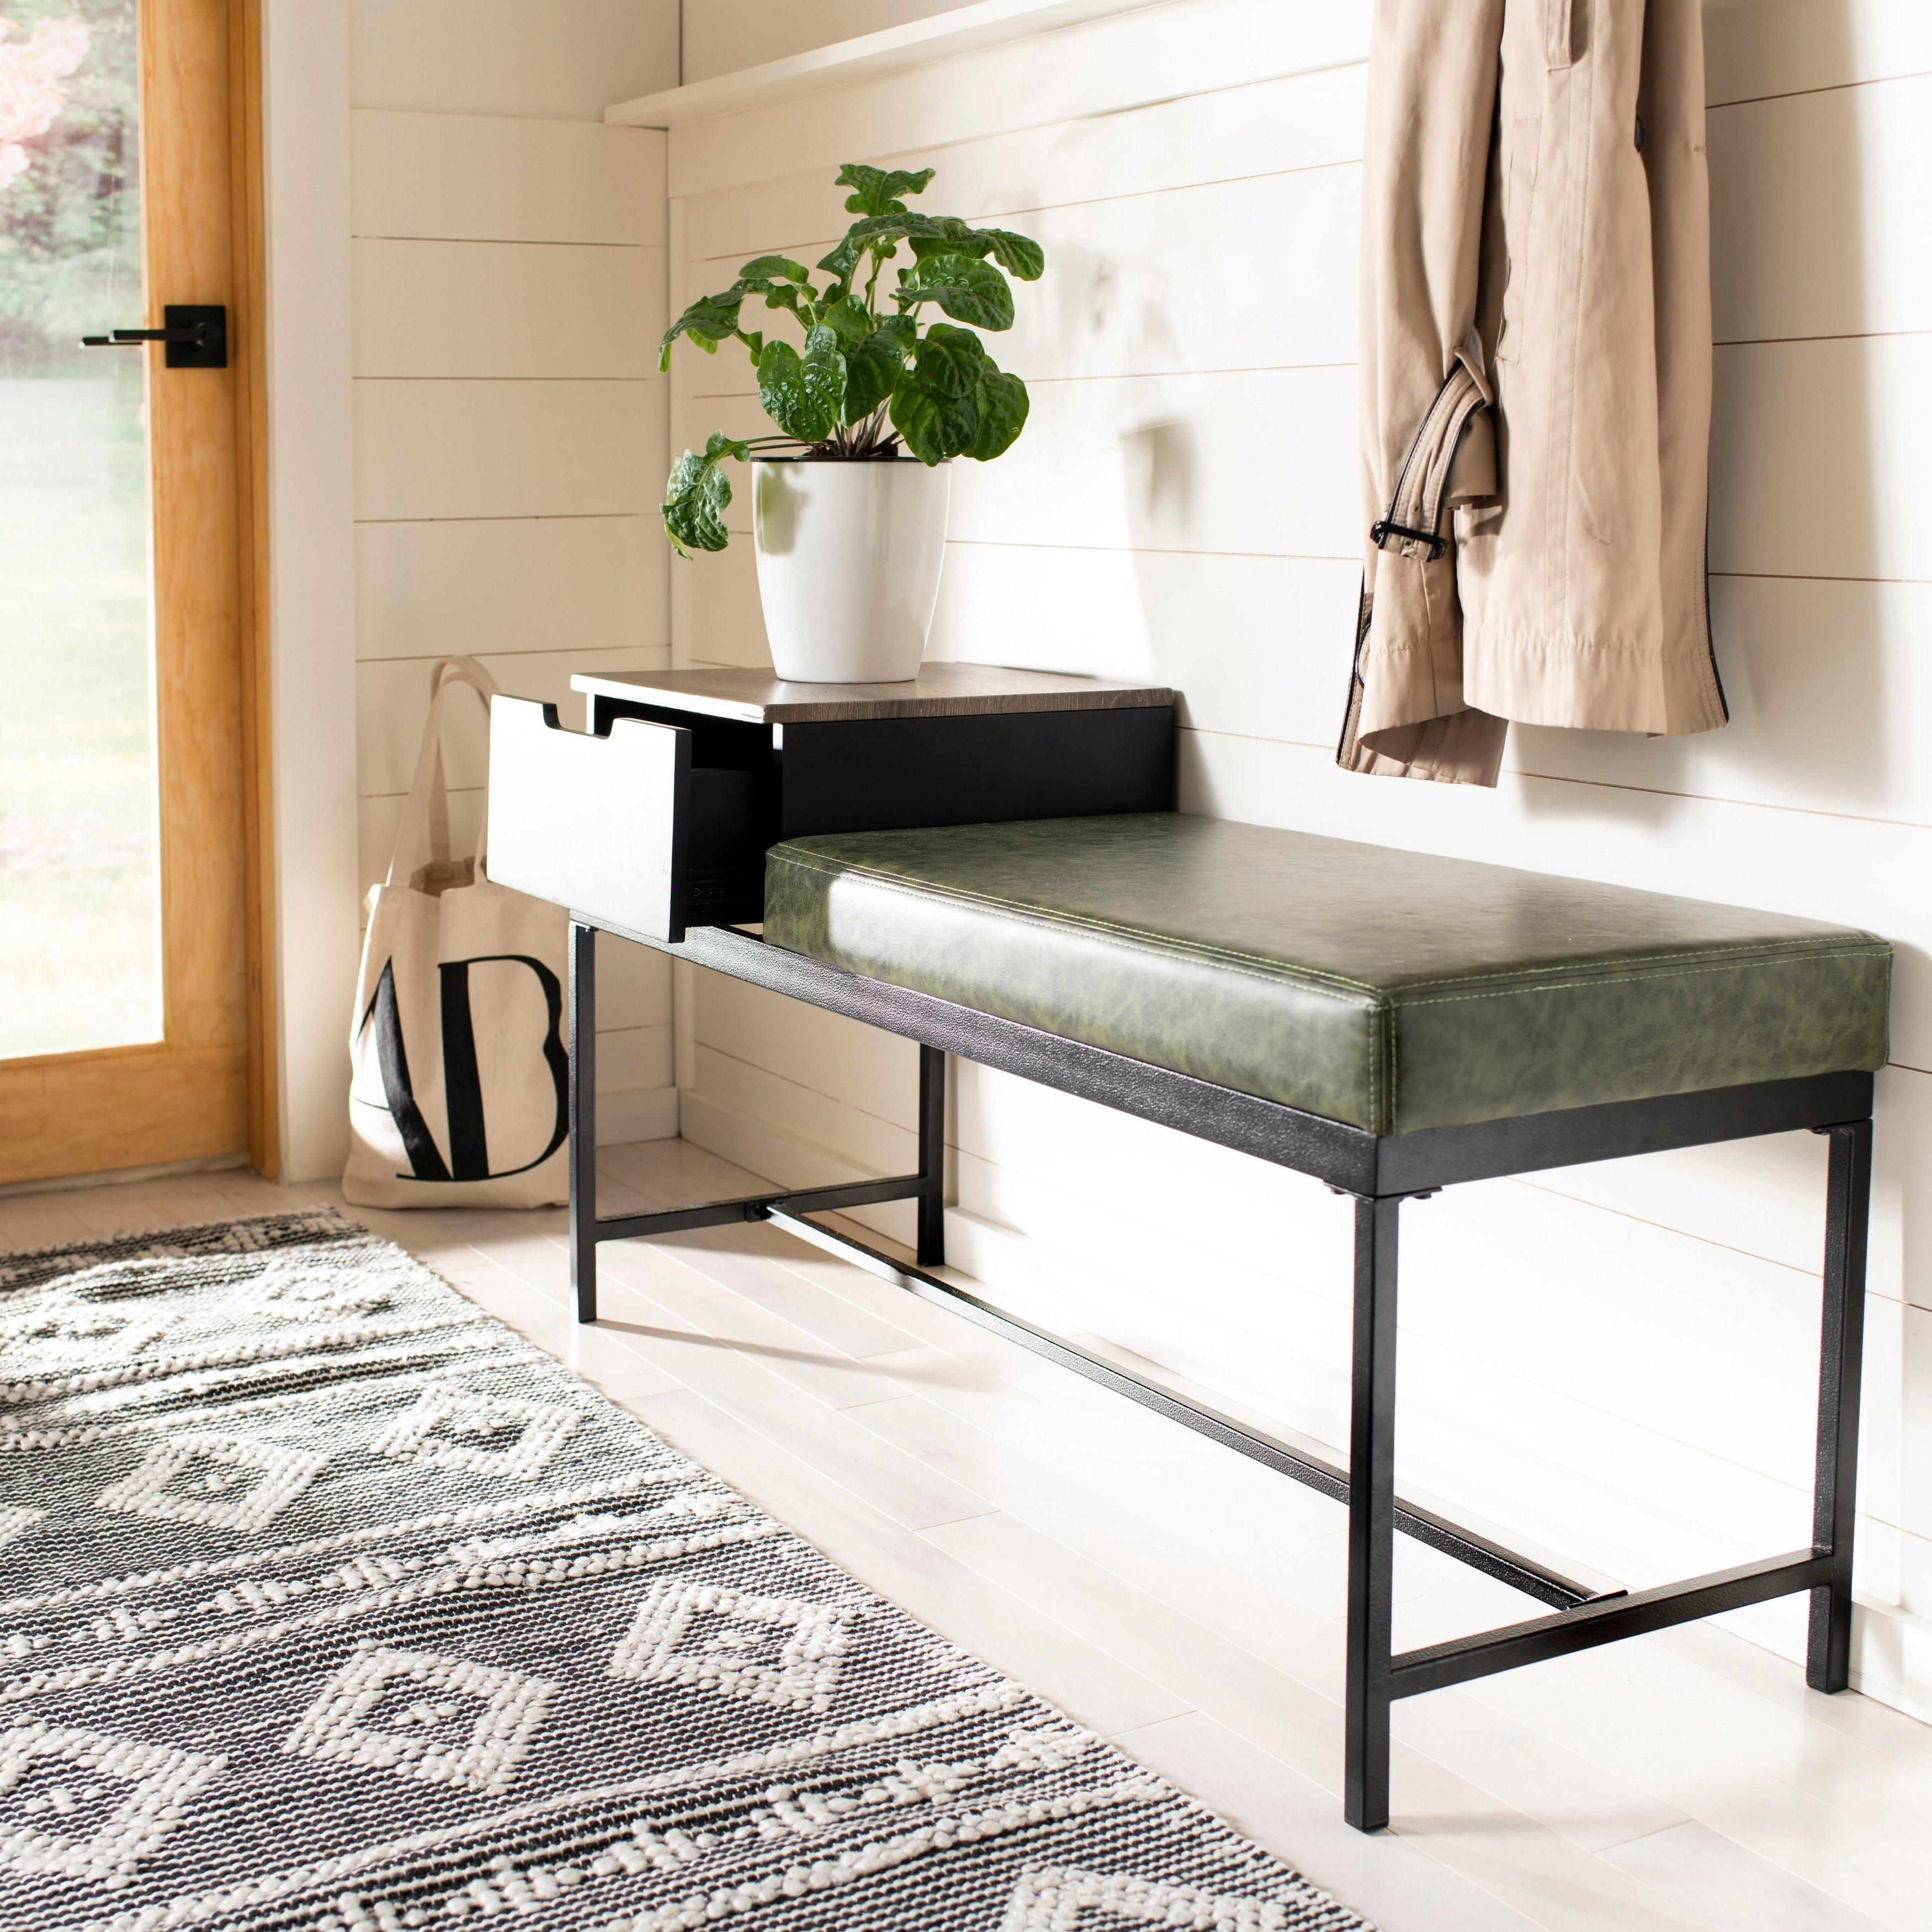 Peachy Safavieh Maruka Bench With Storage Grey Wash Dark Green Caraccident5 Cool Chair Designs And Ideas Caraccident5Info